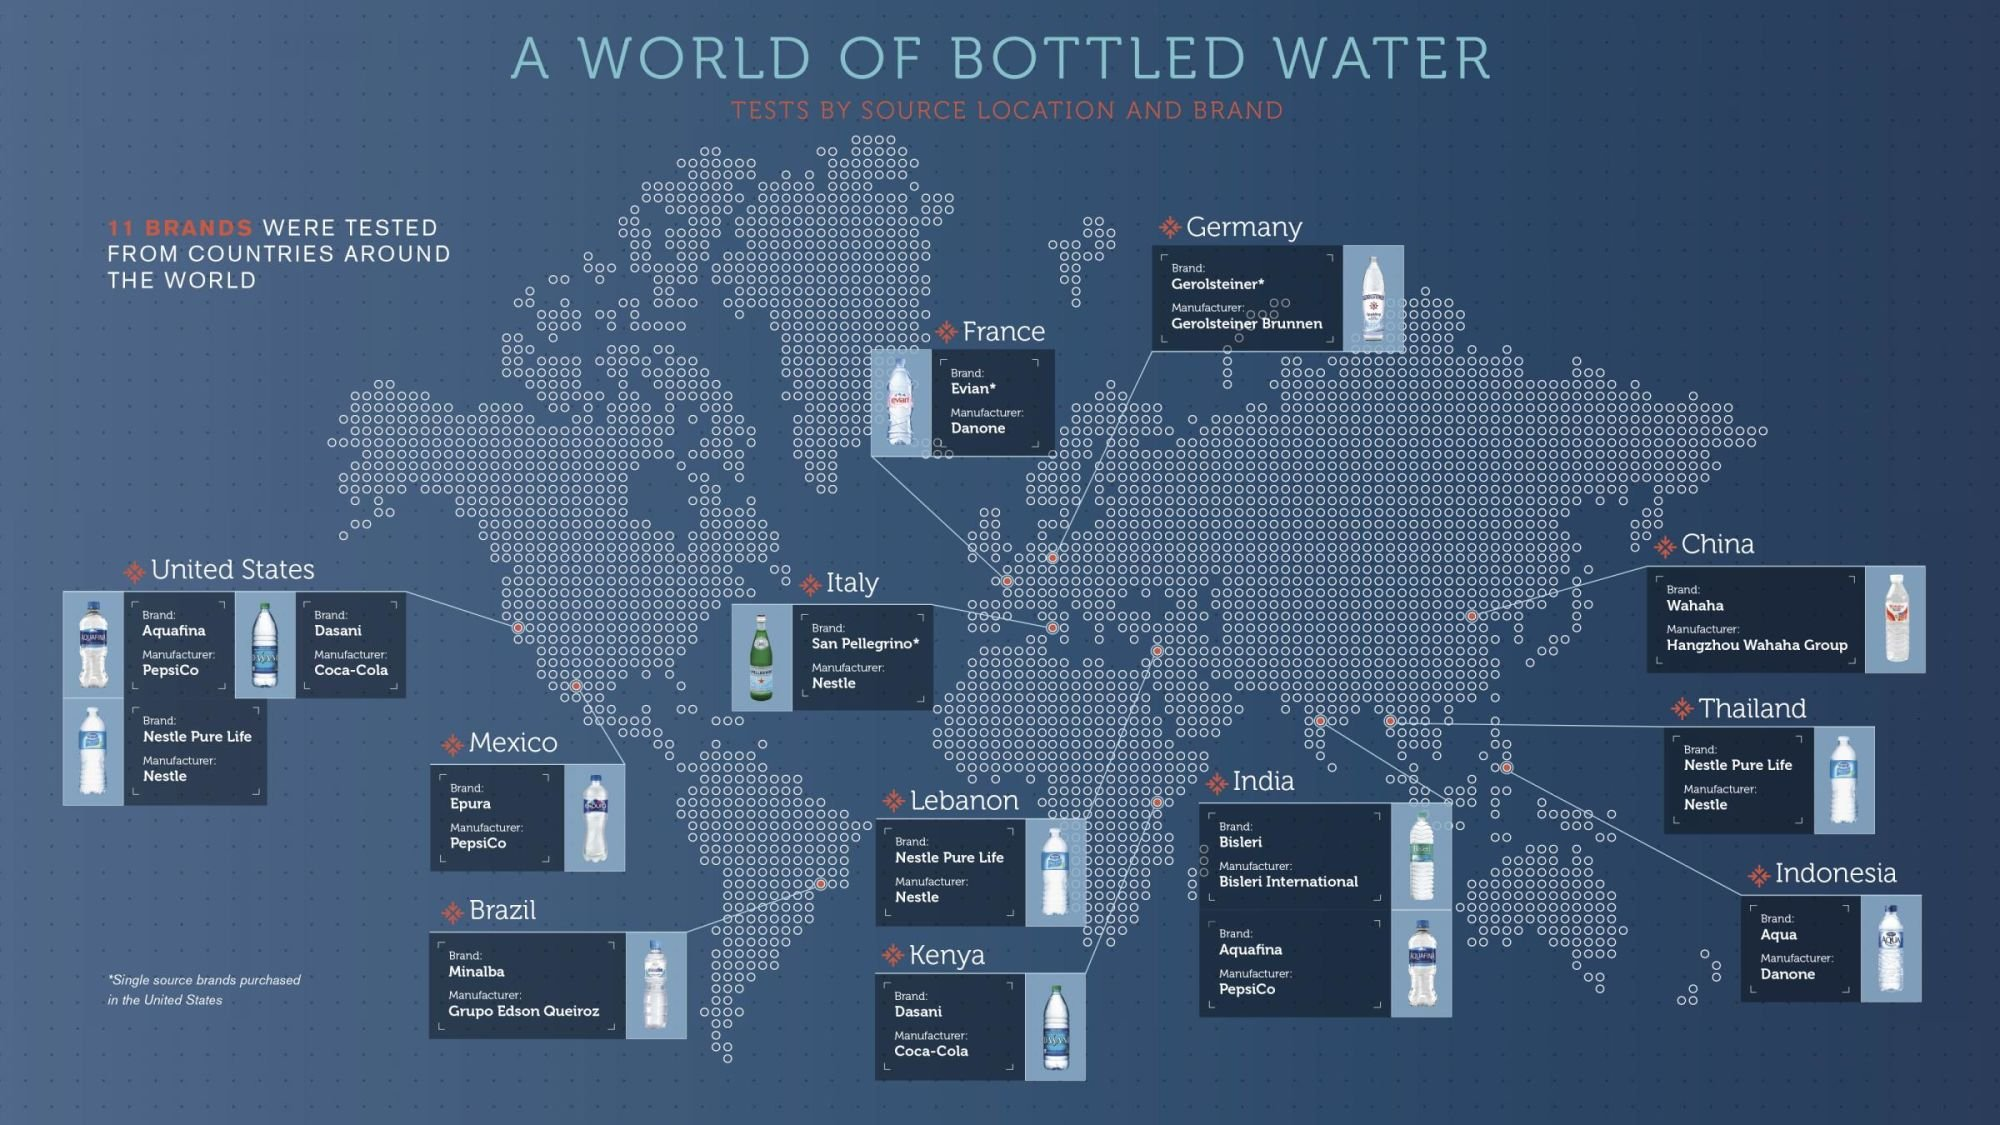 World of Bottled Water - Microplastic